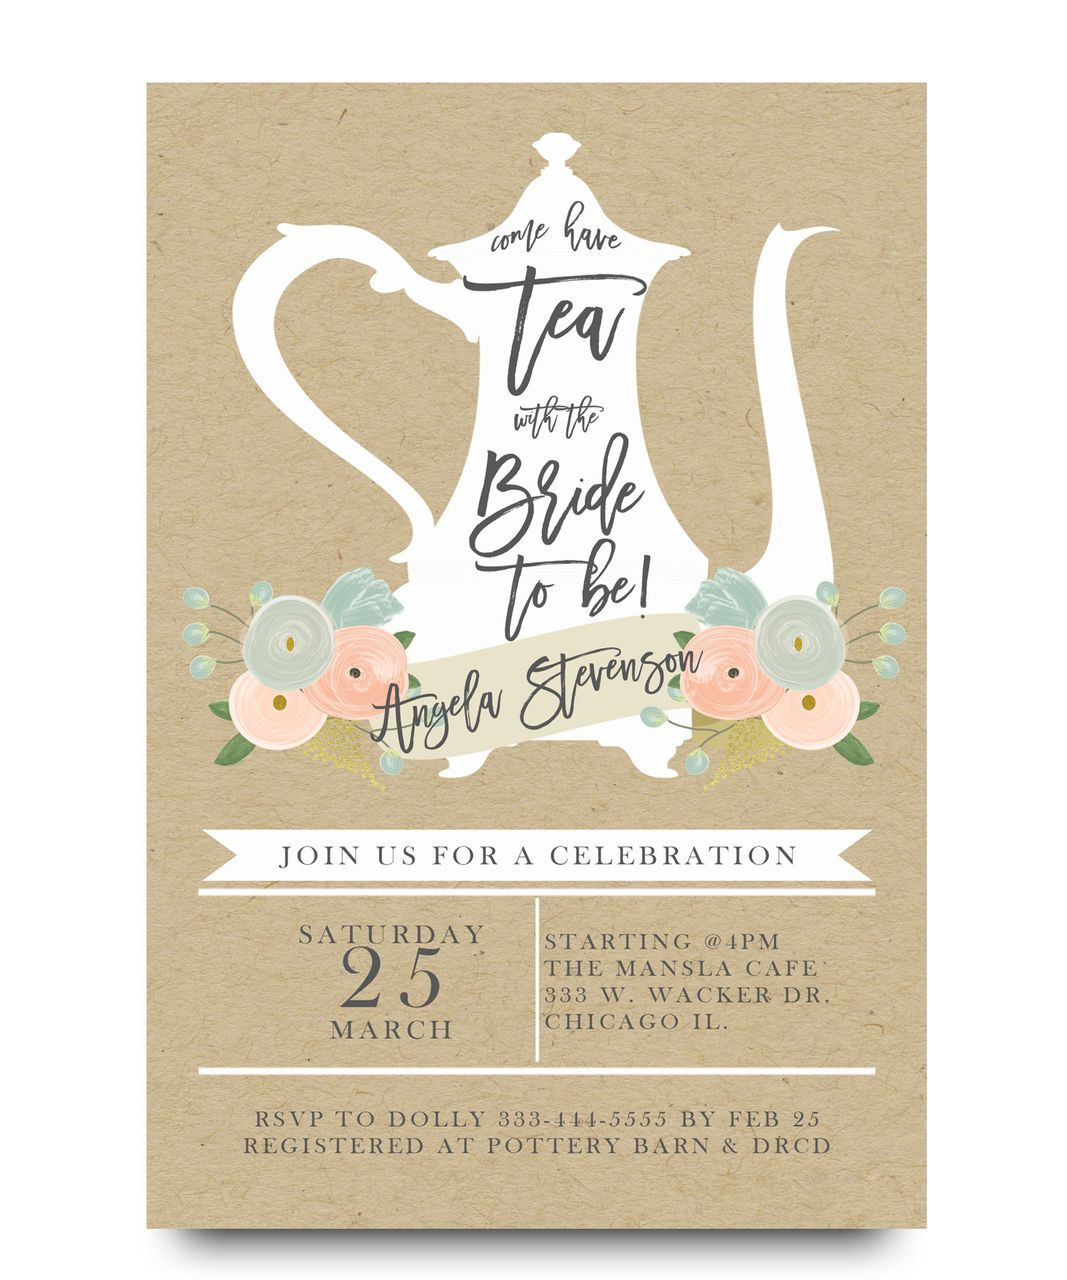 Bridal shower tea party invitation, brunch with bride | Les bridal ...